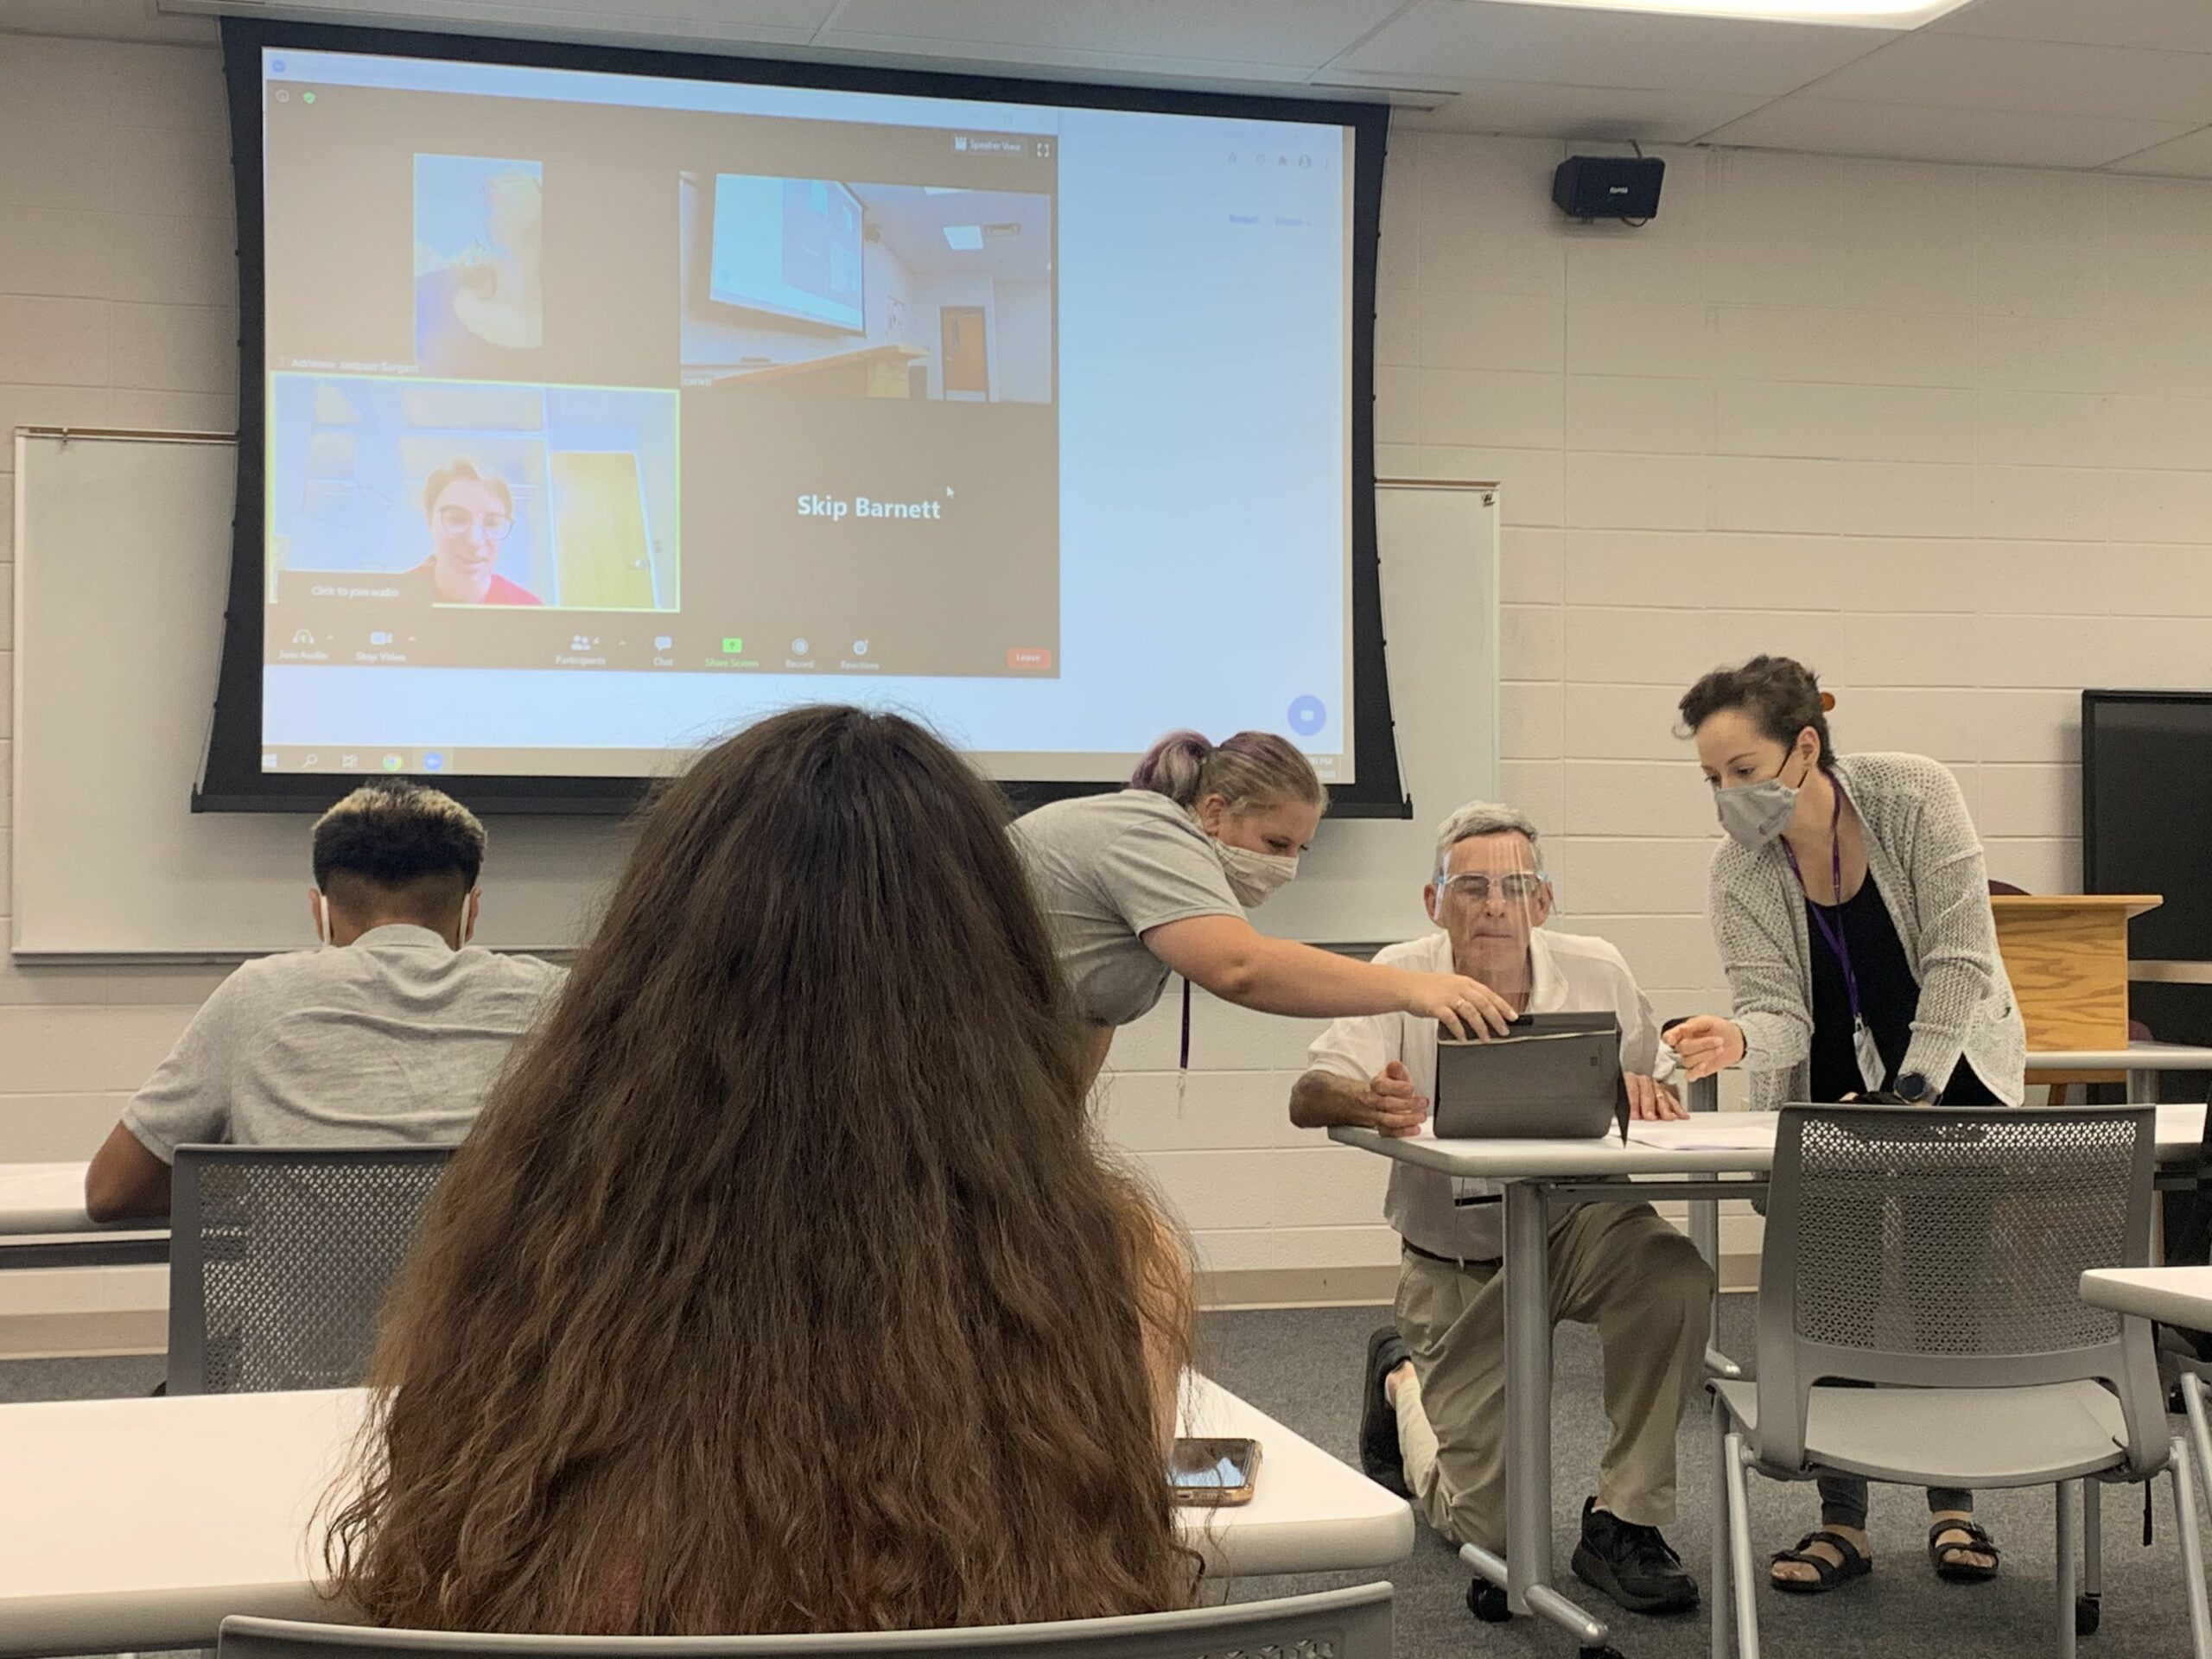 Skip Barnett is assisted by two masked students as he sets up a Zoom call with students who will be attending his class virtually. Skip is wearing a face shield. There are two other students in the classroom seated at desks, and the projector shows three students who are attending class virtually